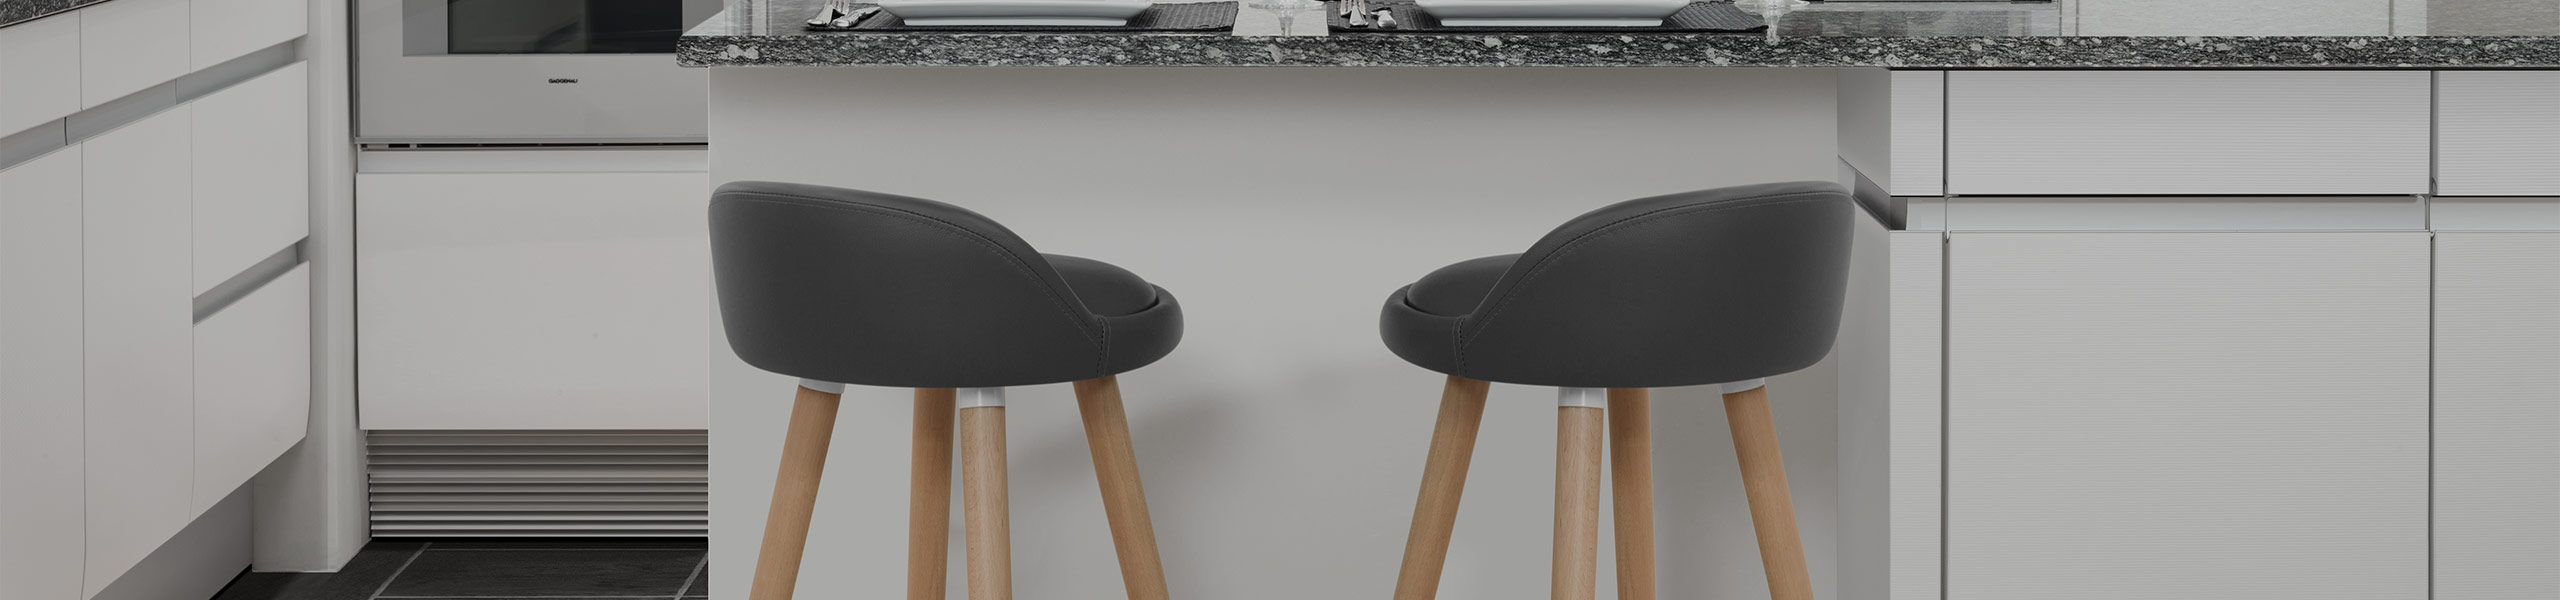 Jive Wooden Stool Grey Video Banner